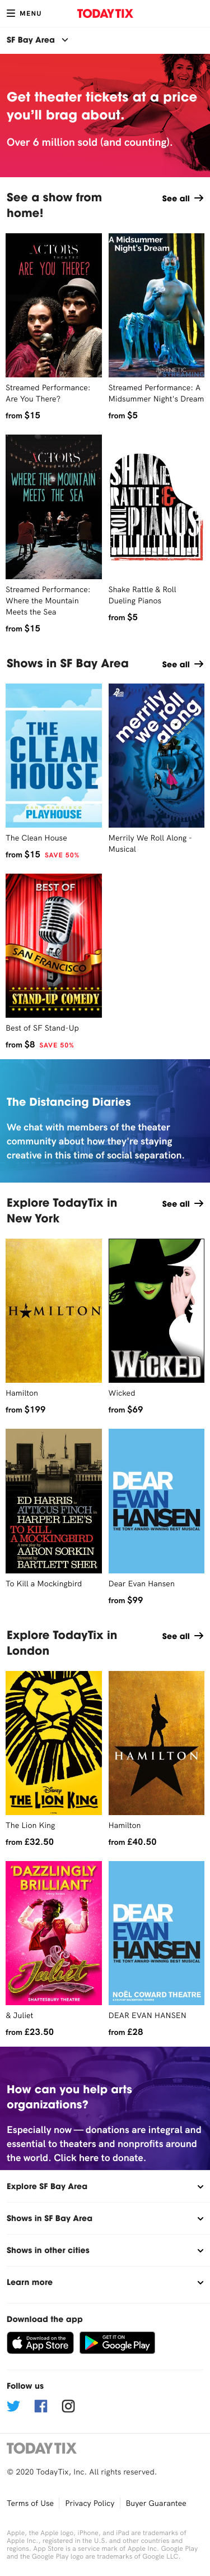 todaytix Coupon